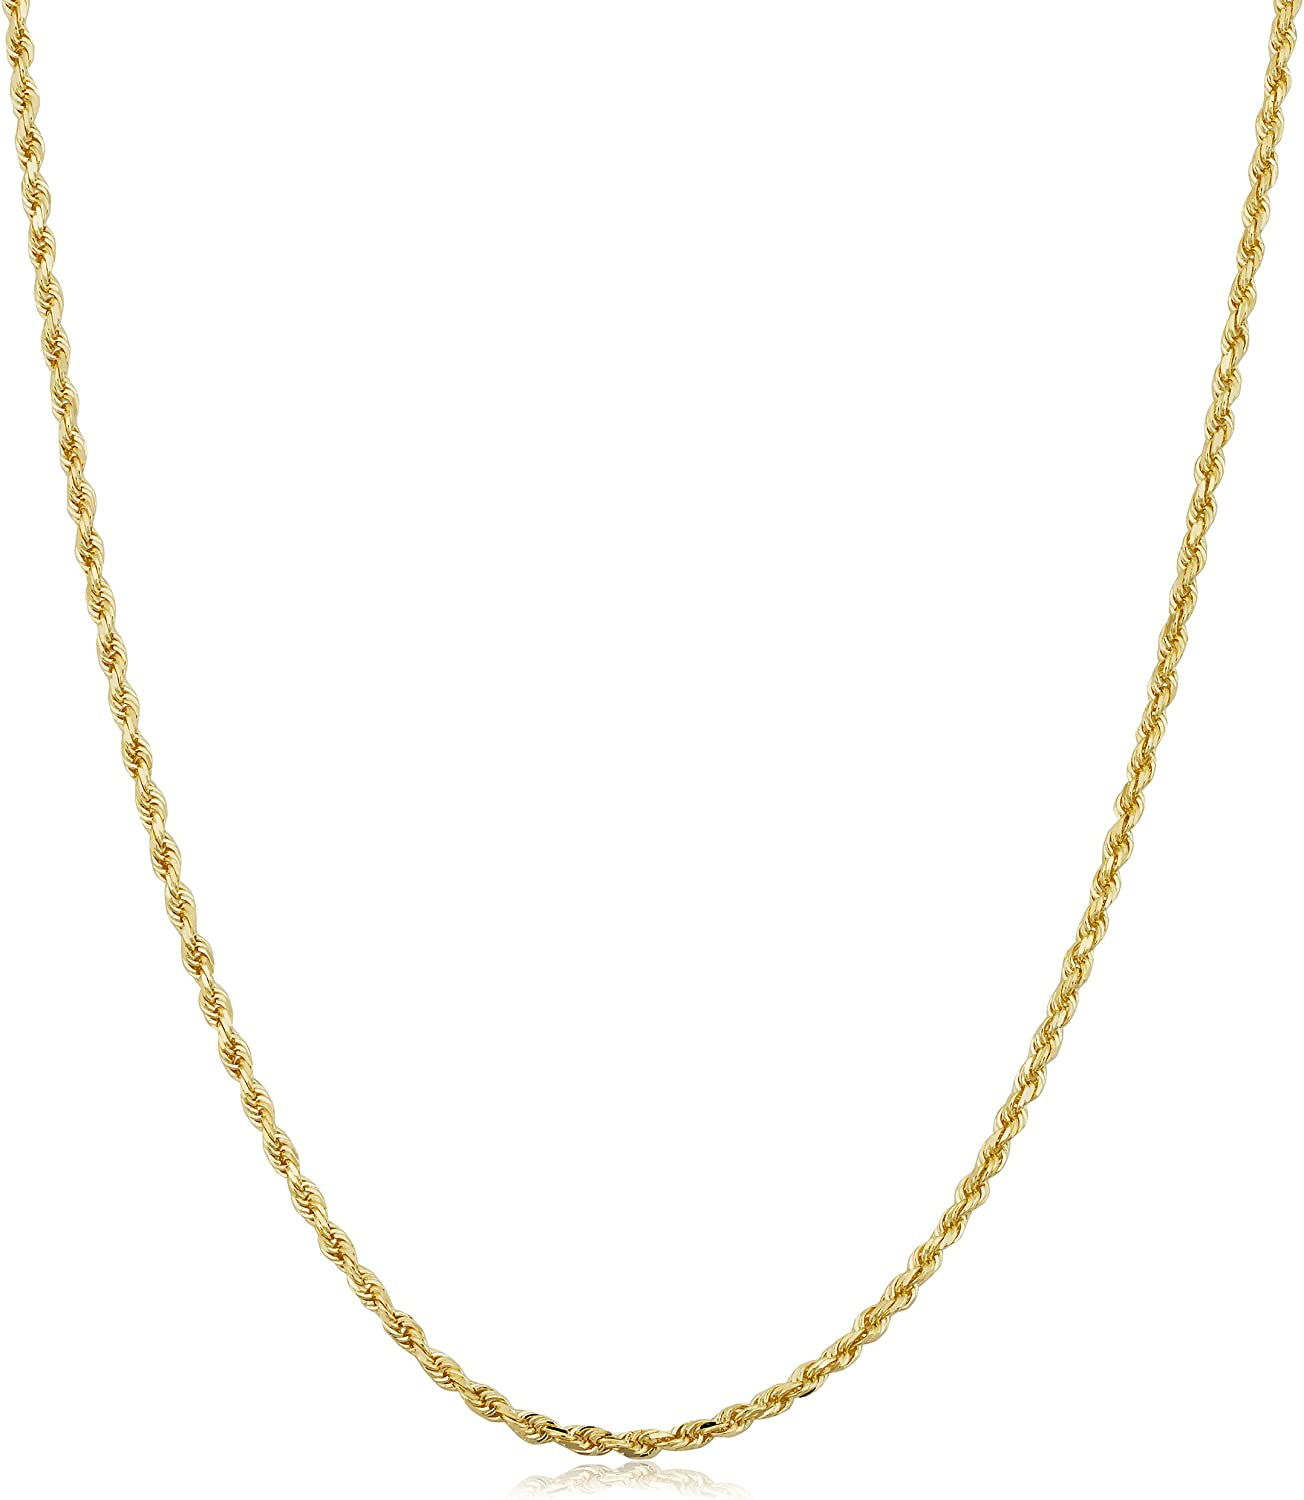 """20/"""" 18/"""" 24/"""" 14 k Solid Yellow Gold 1.2 mm Singapore Chain Necklace 16/"""""""